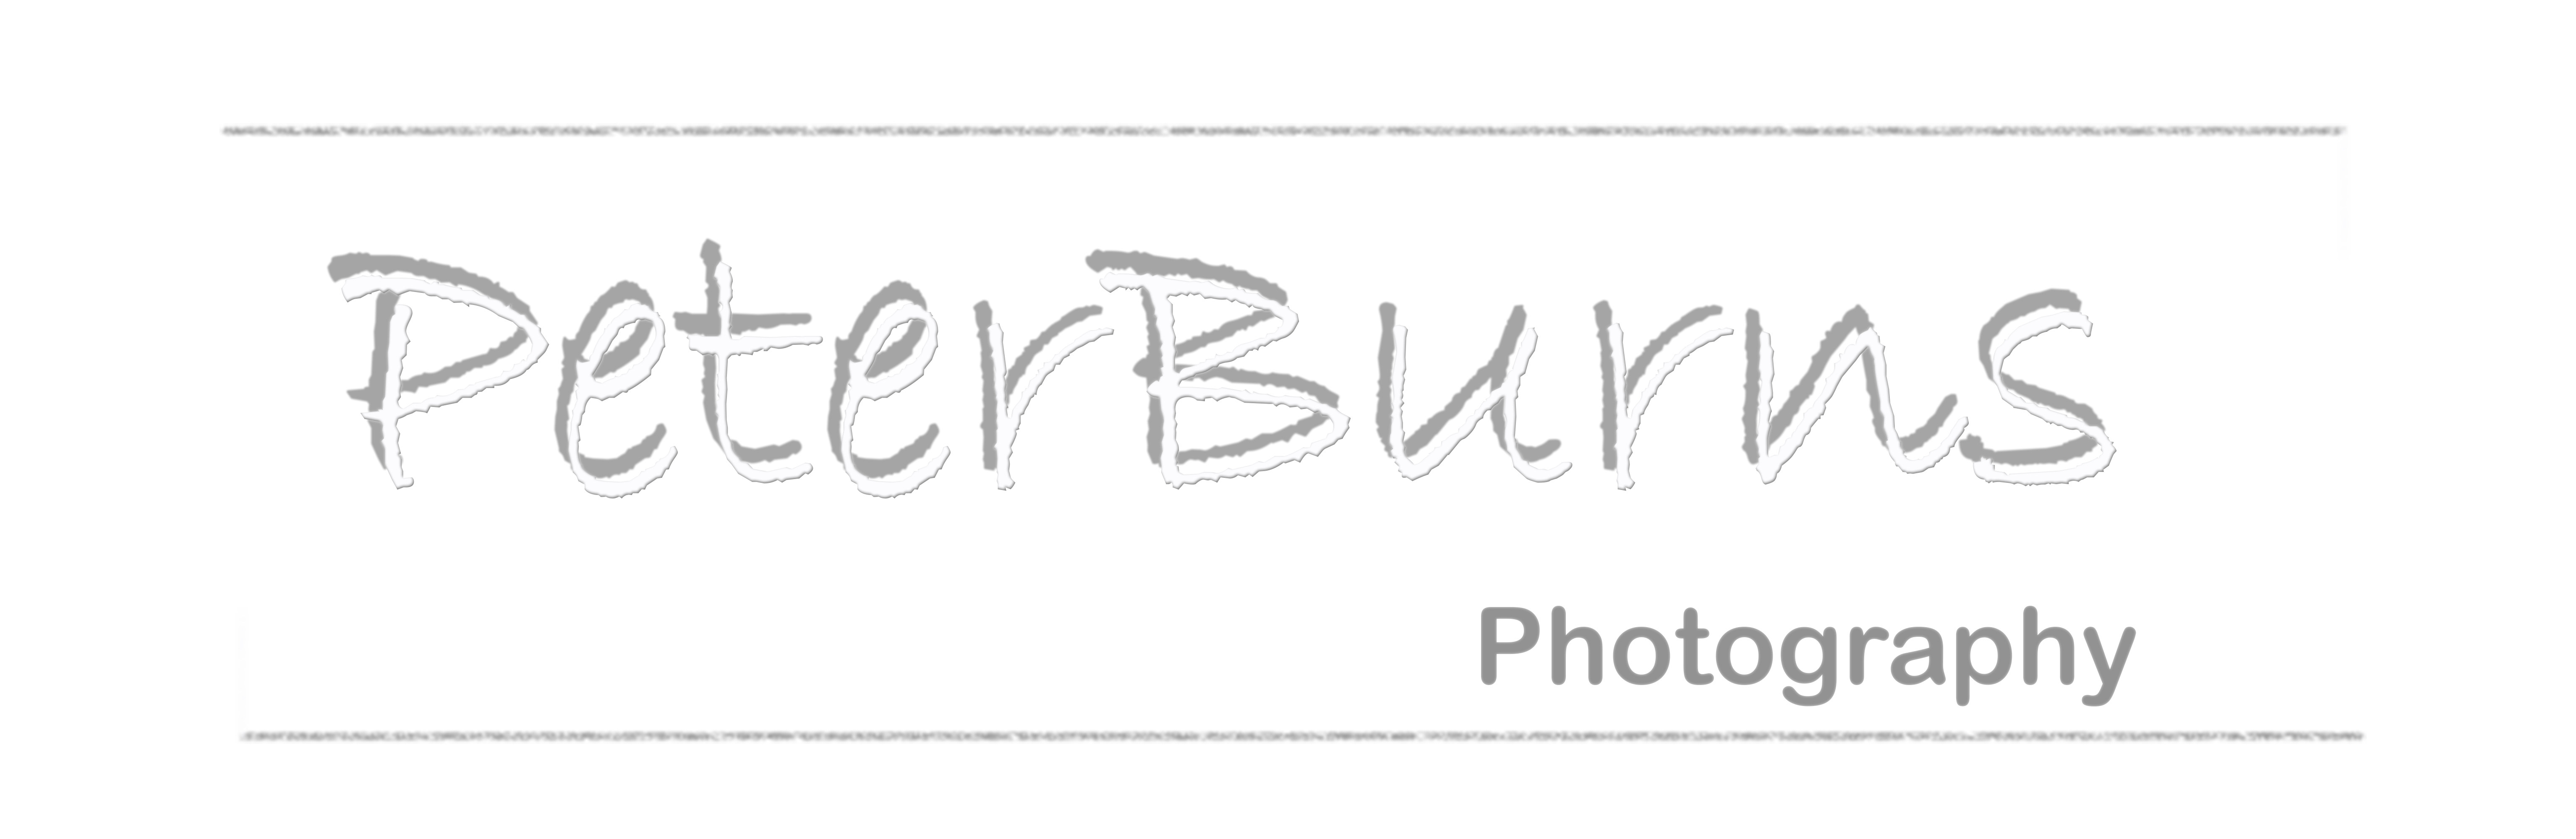 Peter Burns Photography Logo